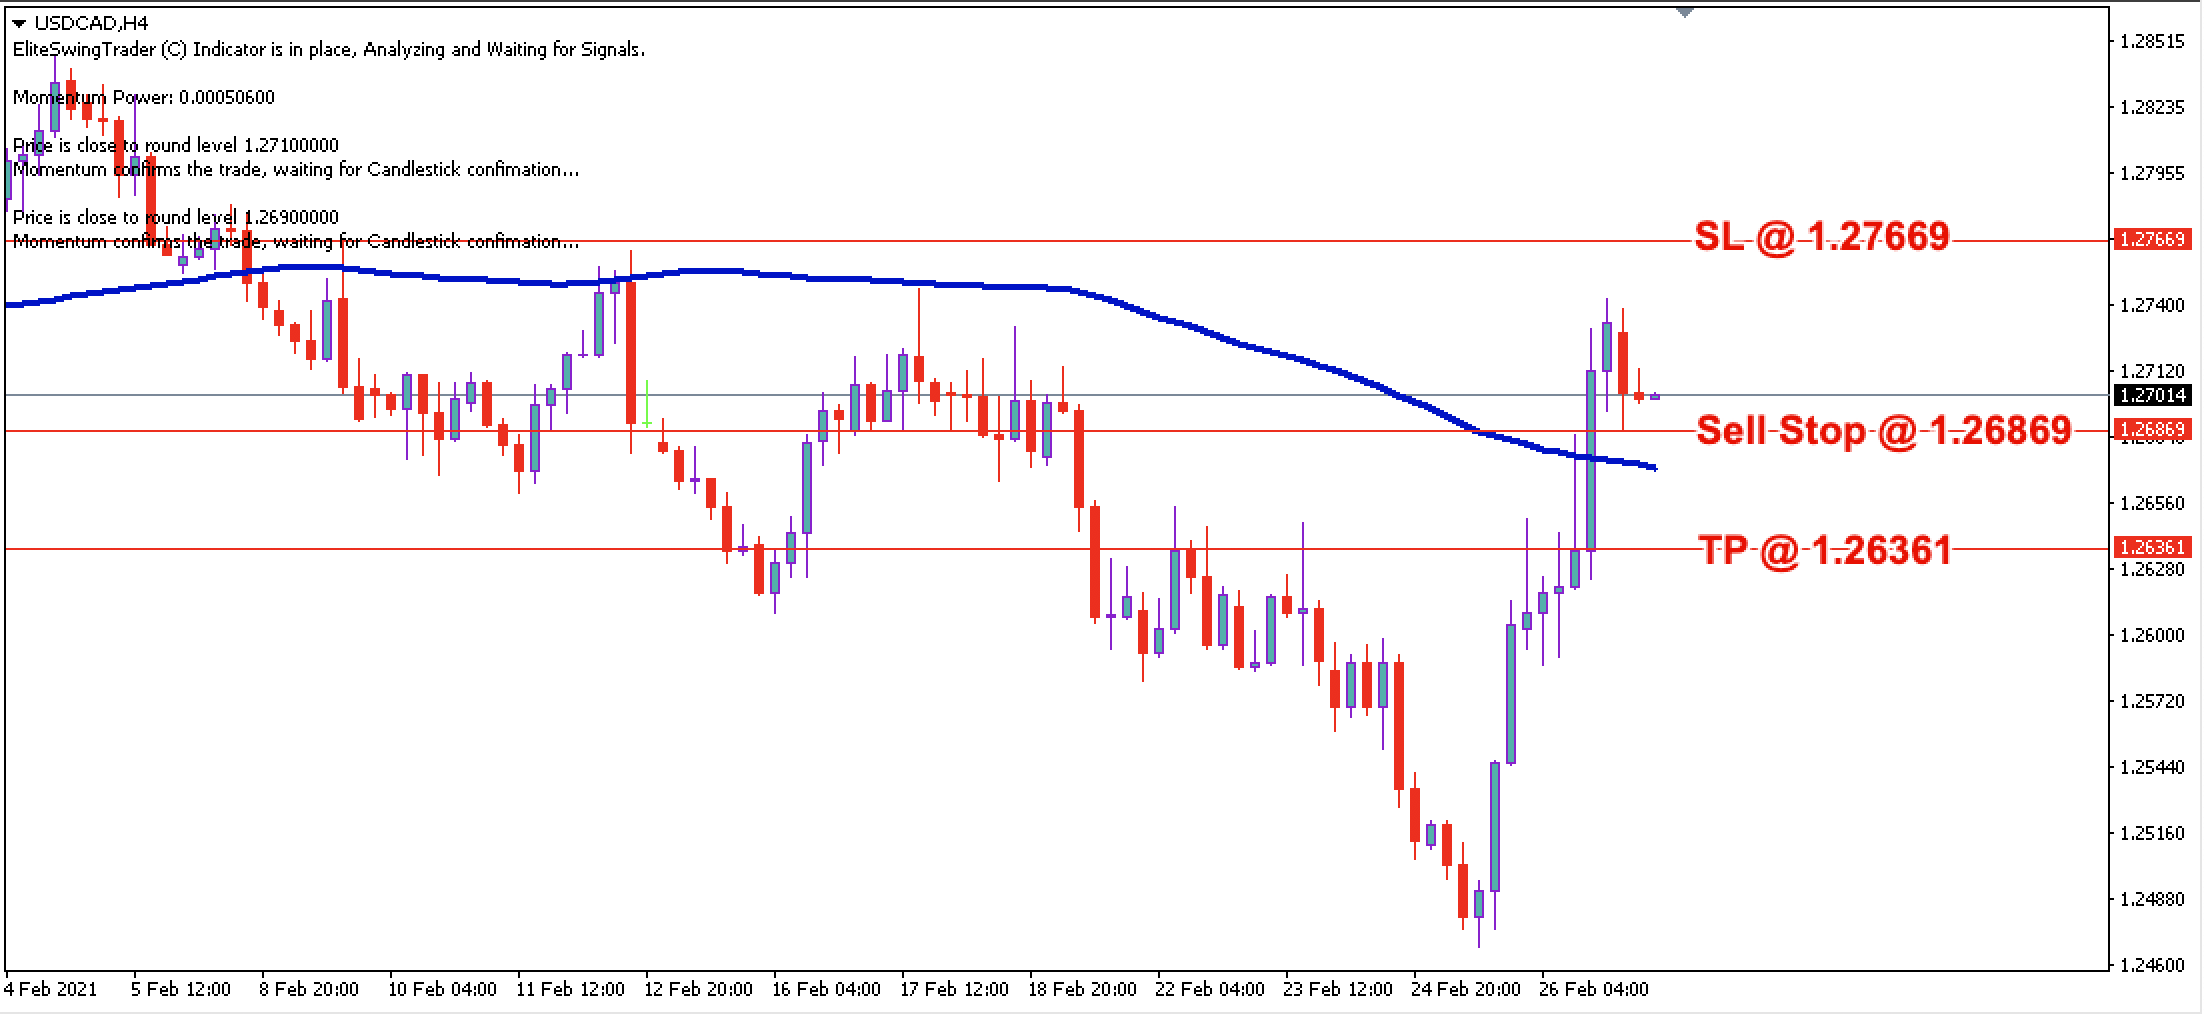 USD/CAD Daily Price Forecast - 1st March 2021